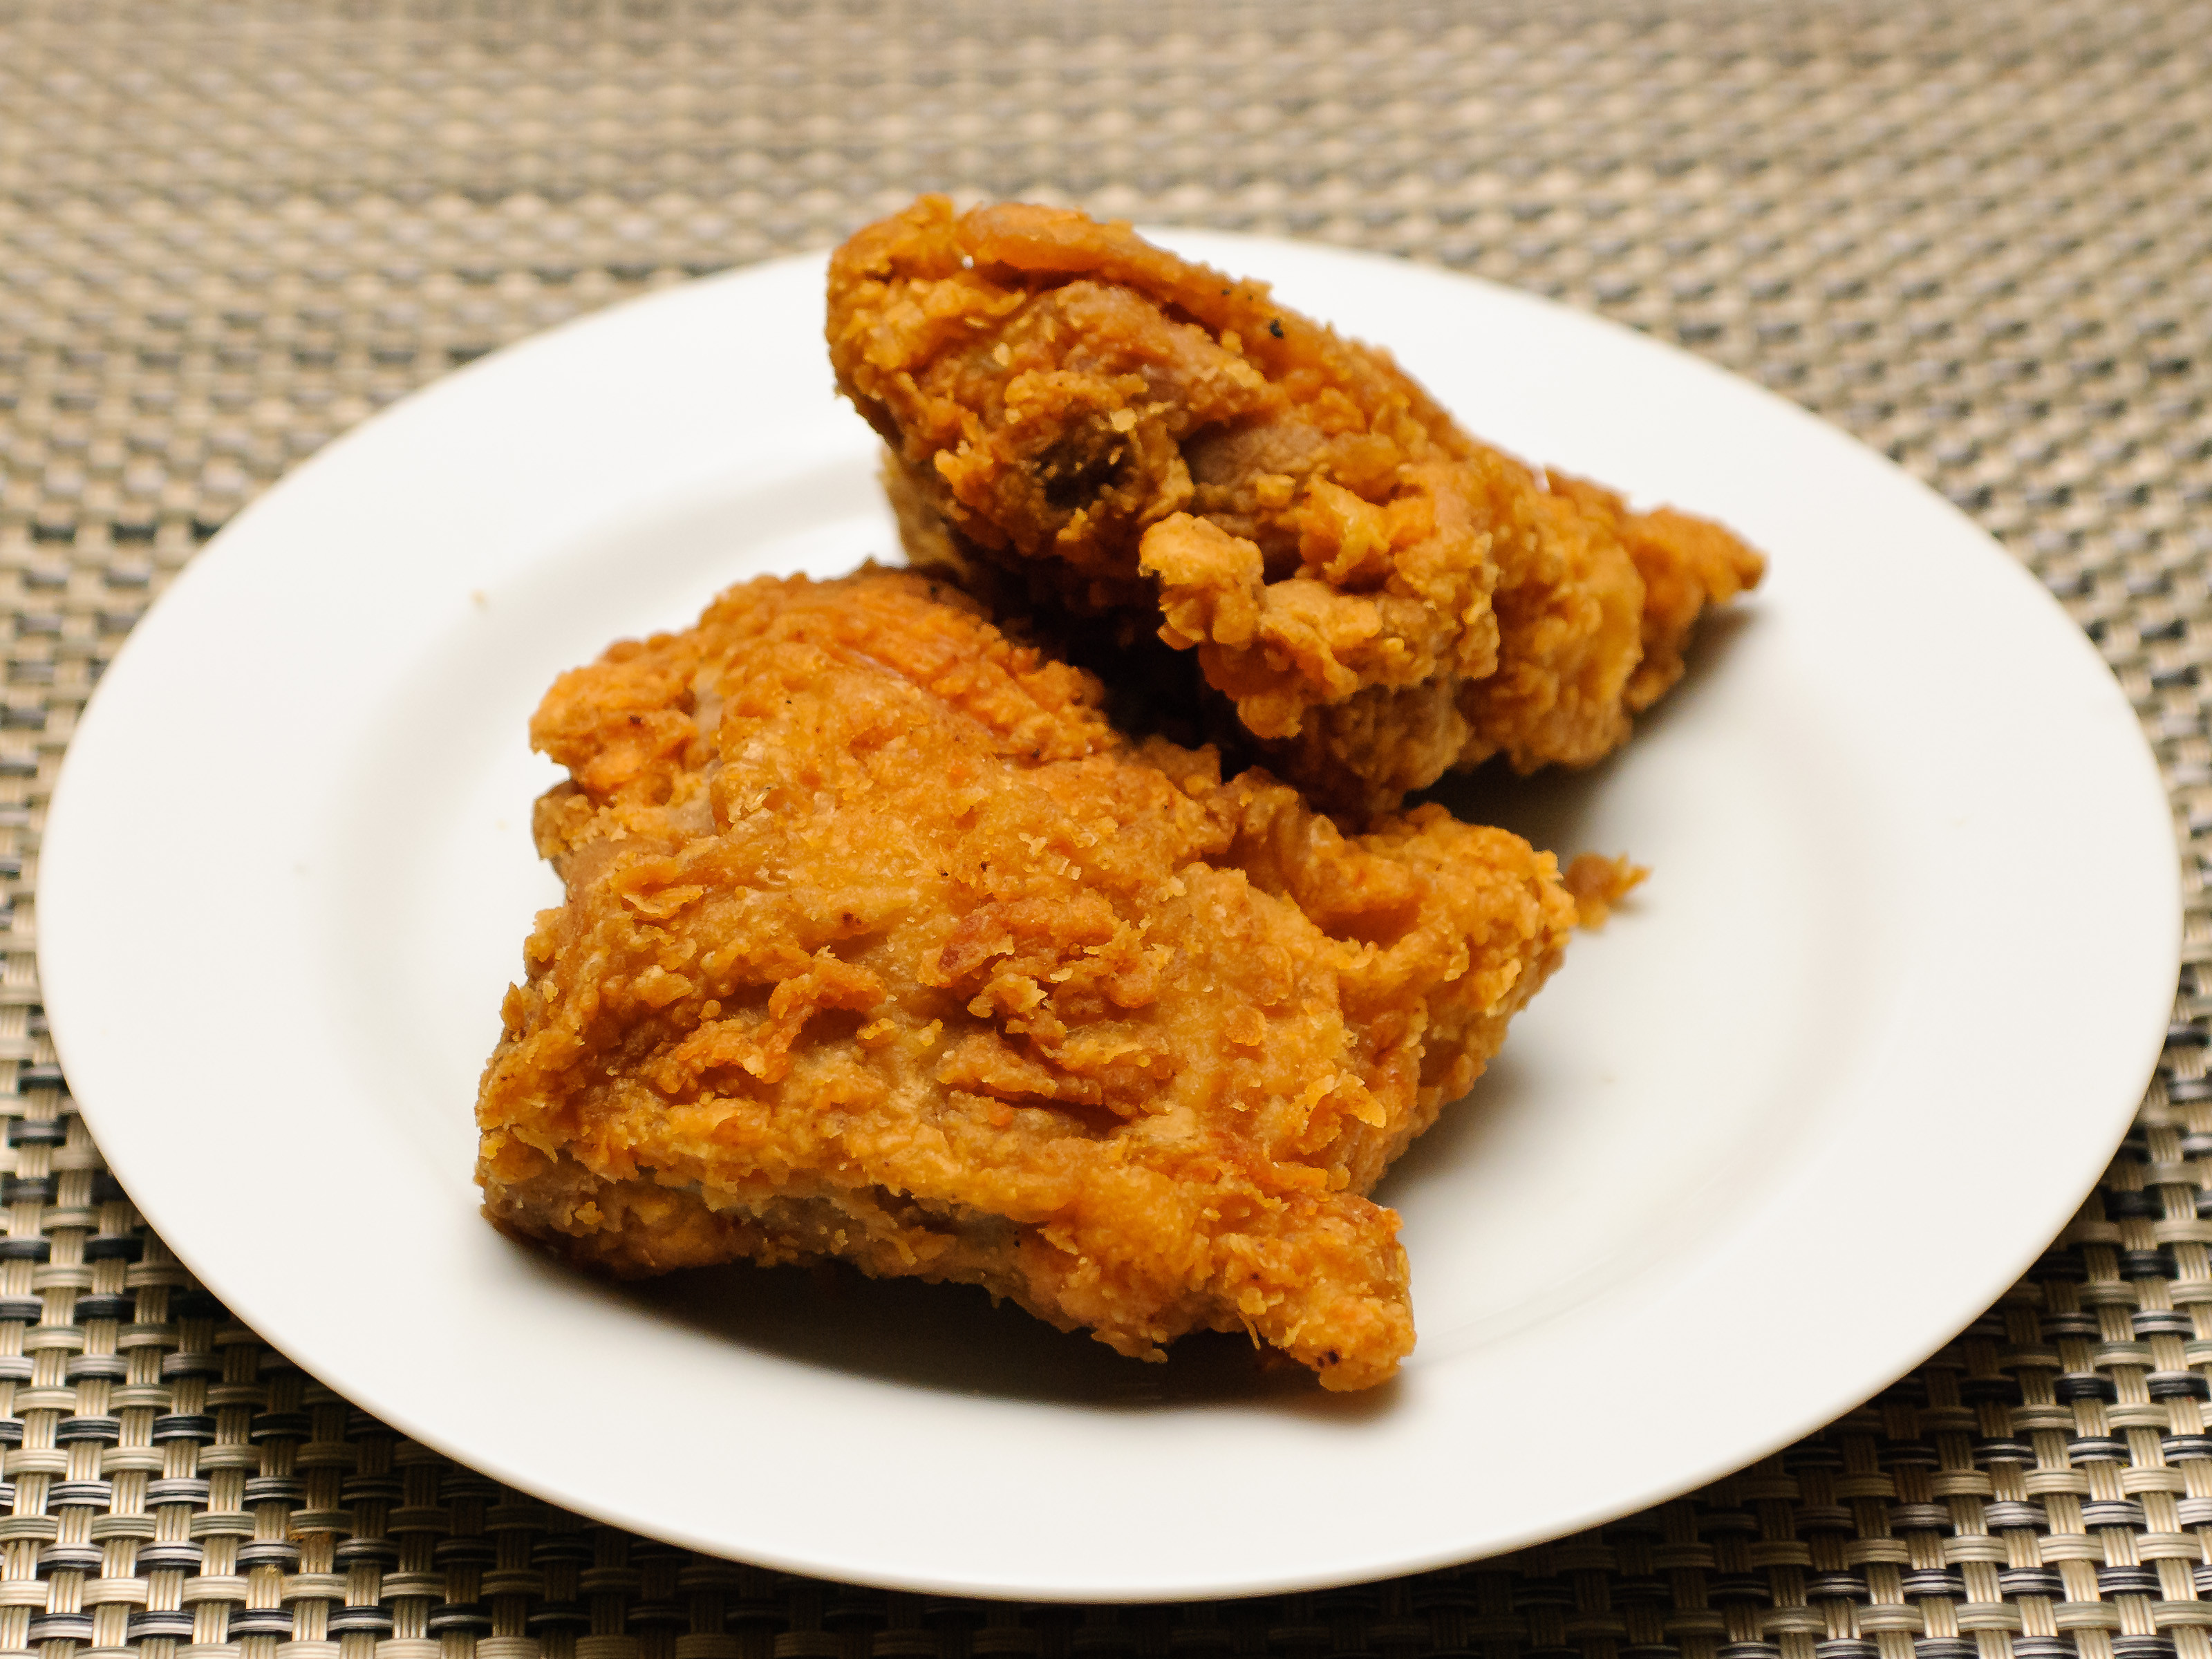 How To Reheat Fried Chicken  3 Easy Ways to Reheat Fried Chicken wikiHow